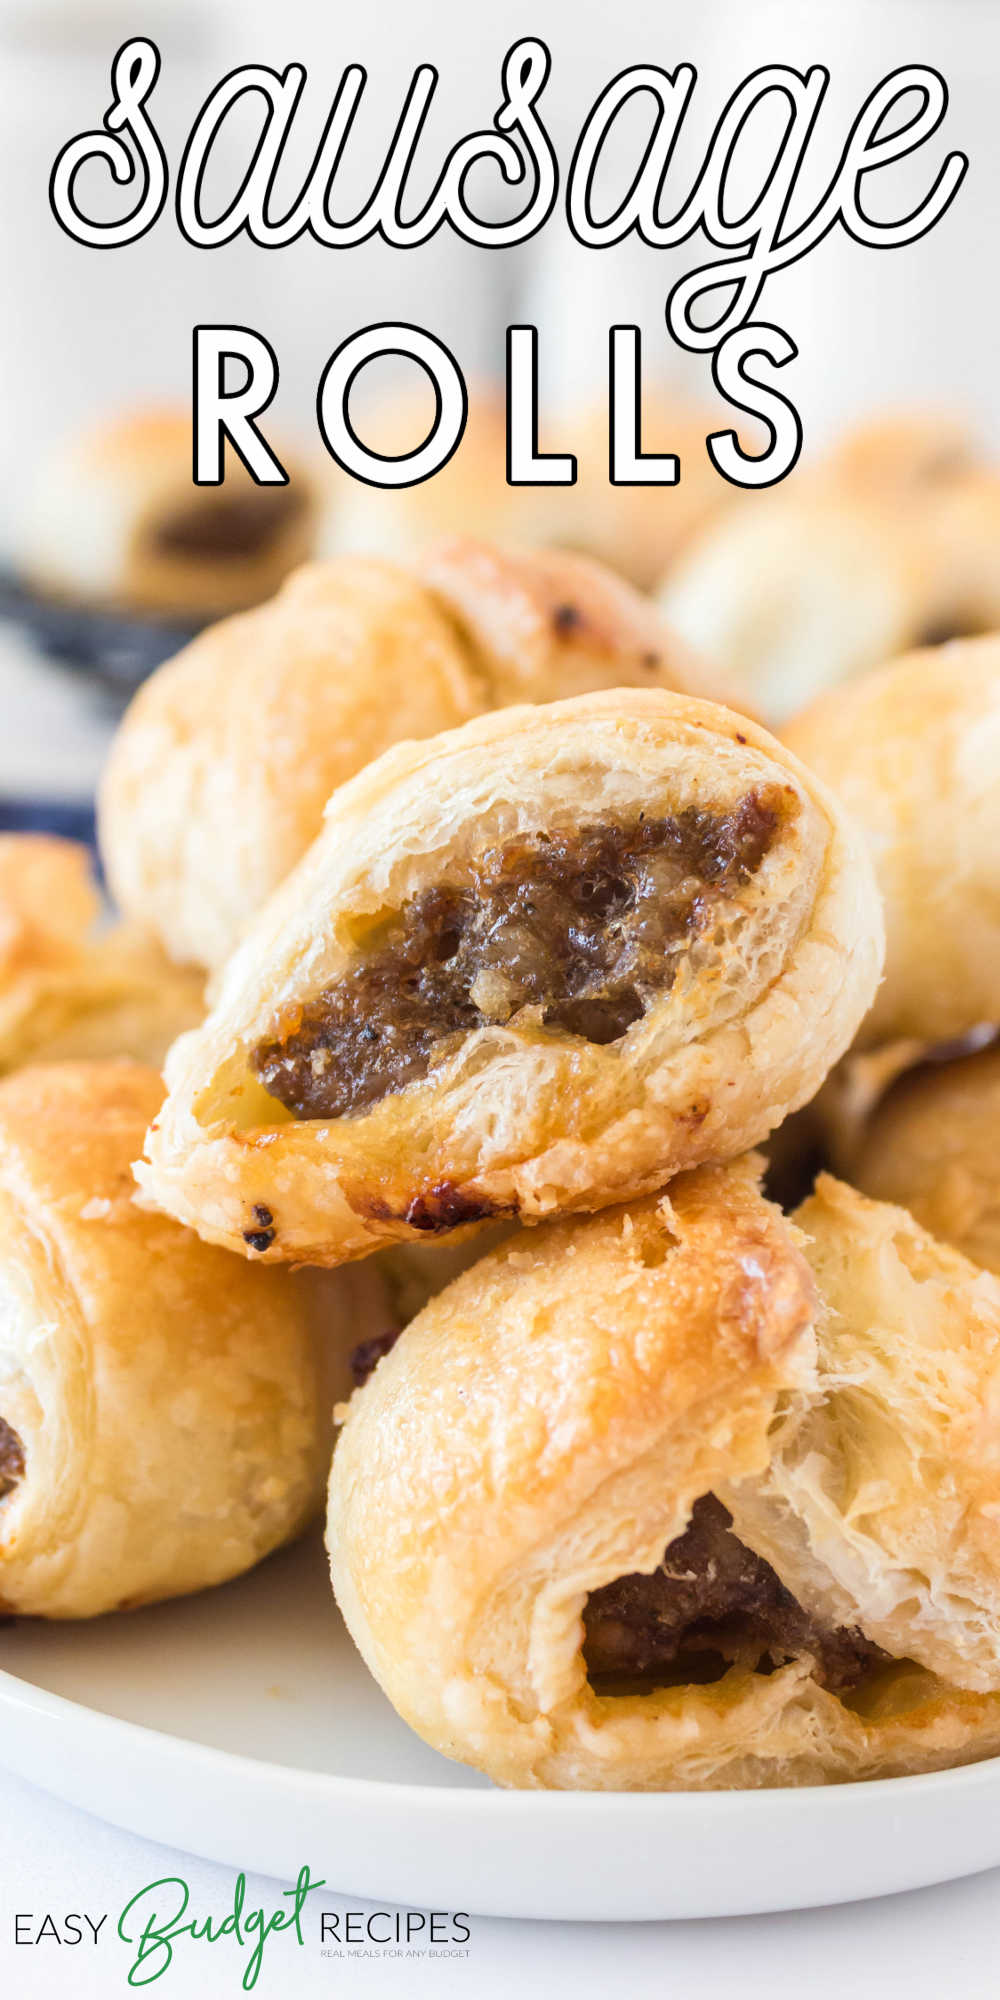 Our Sausage Rolls recipe is a variation of the classic British sausage roll. We make our recipe easier by using store-bought puff pastry dough. via @easybudgetrecipes